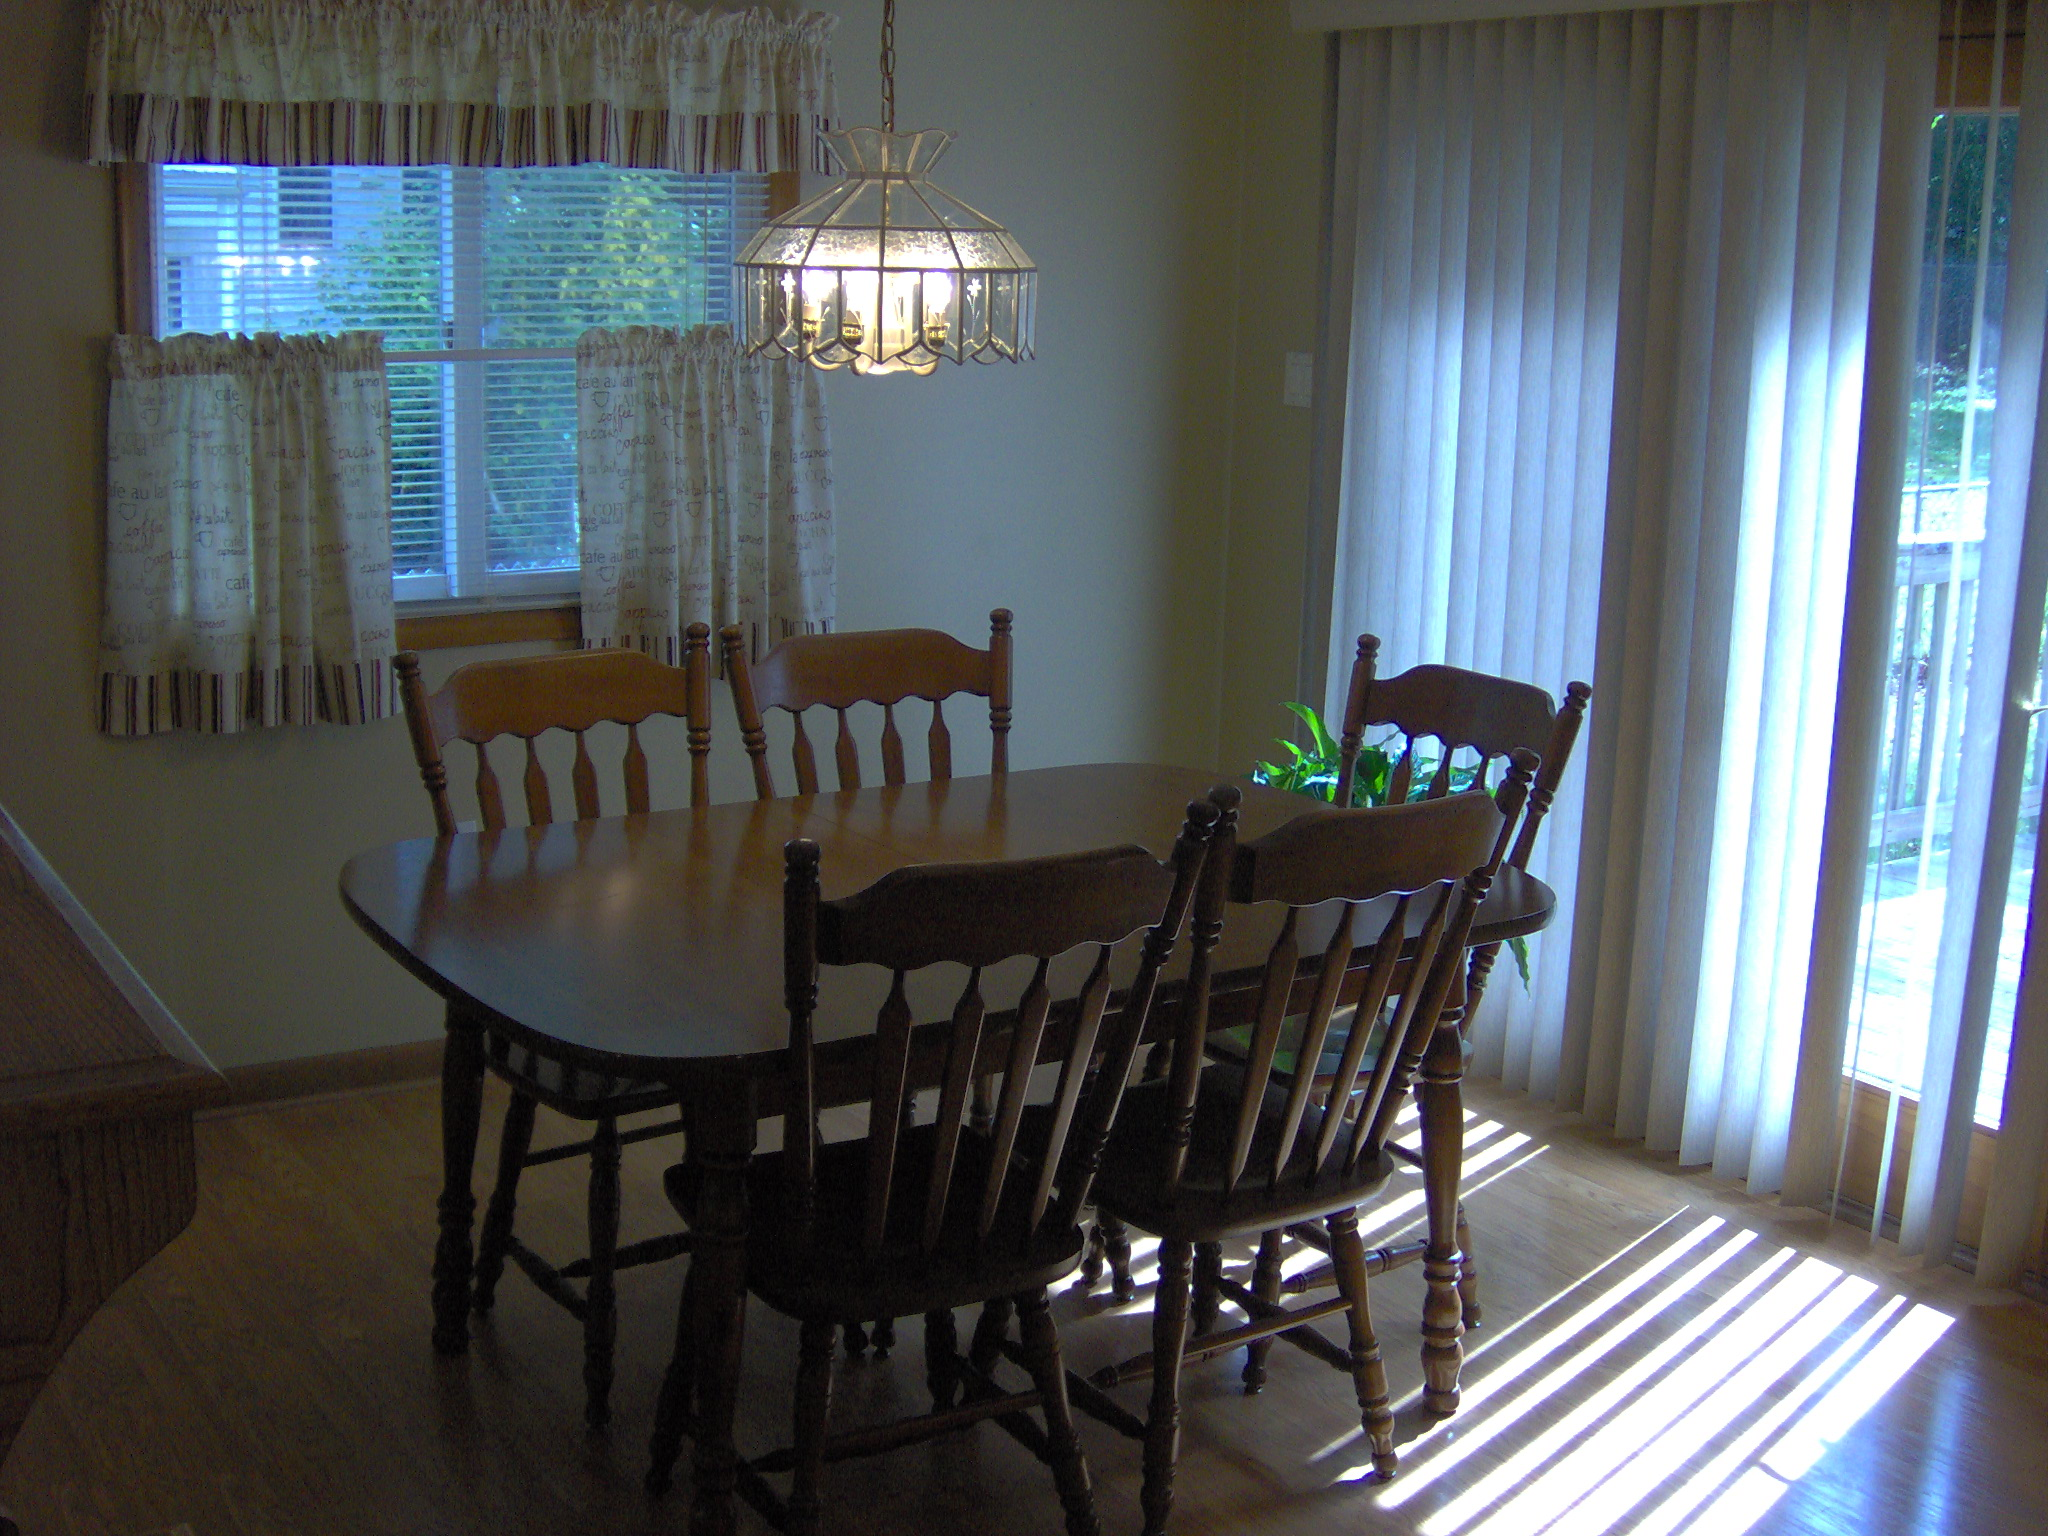 harleysville mature singles Crescent meadows cottages the crescent meadows cottage neighborhood offers twin one-story and single cottages these spacious homes are located in the center of the campus on three interconnected streets and walking paths.